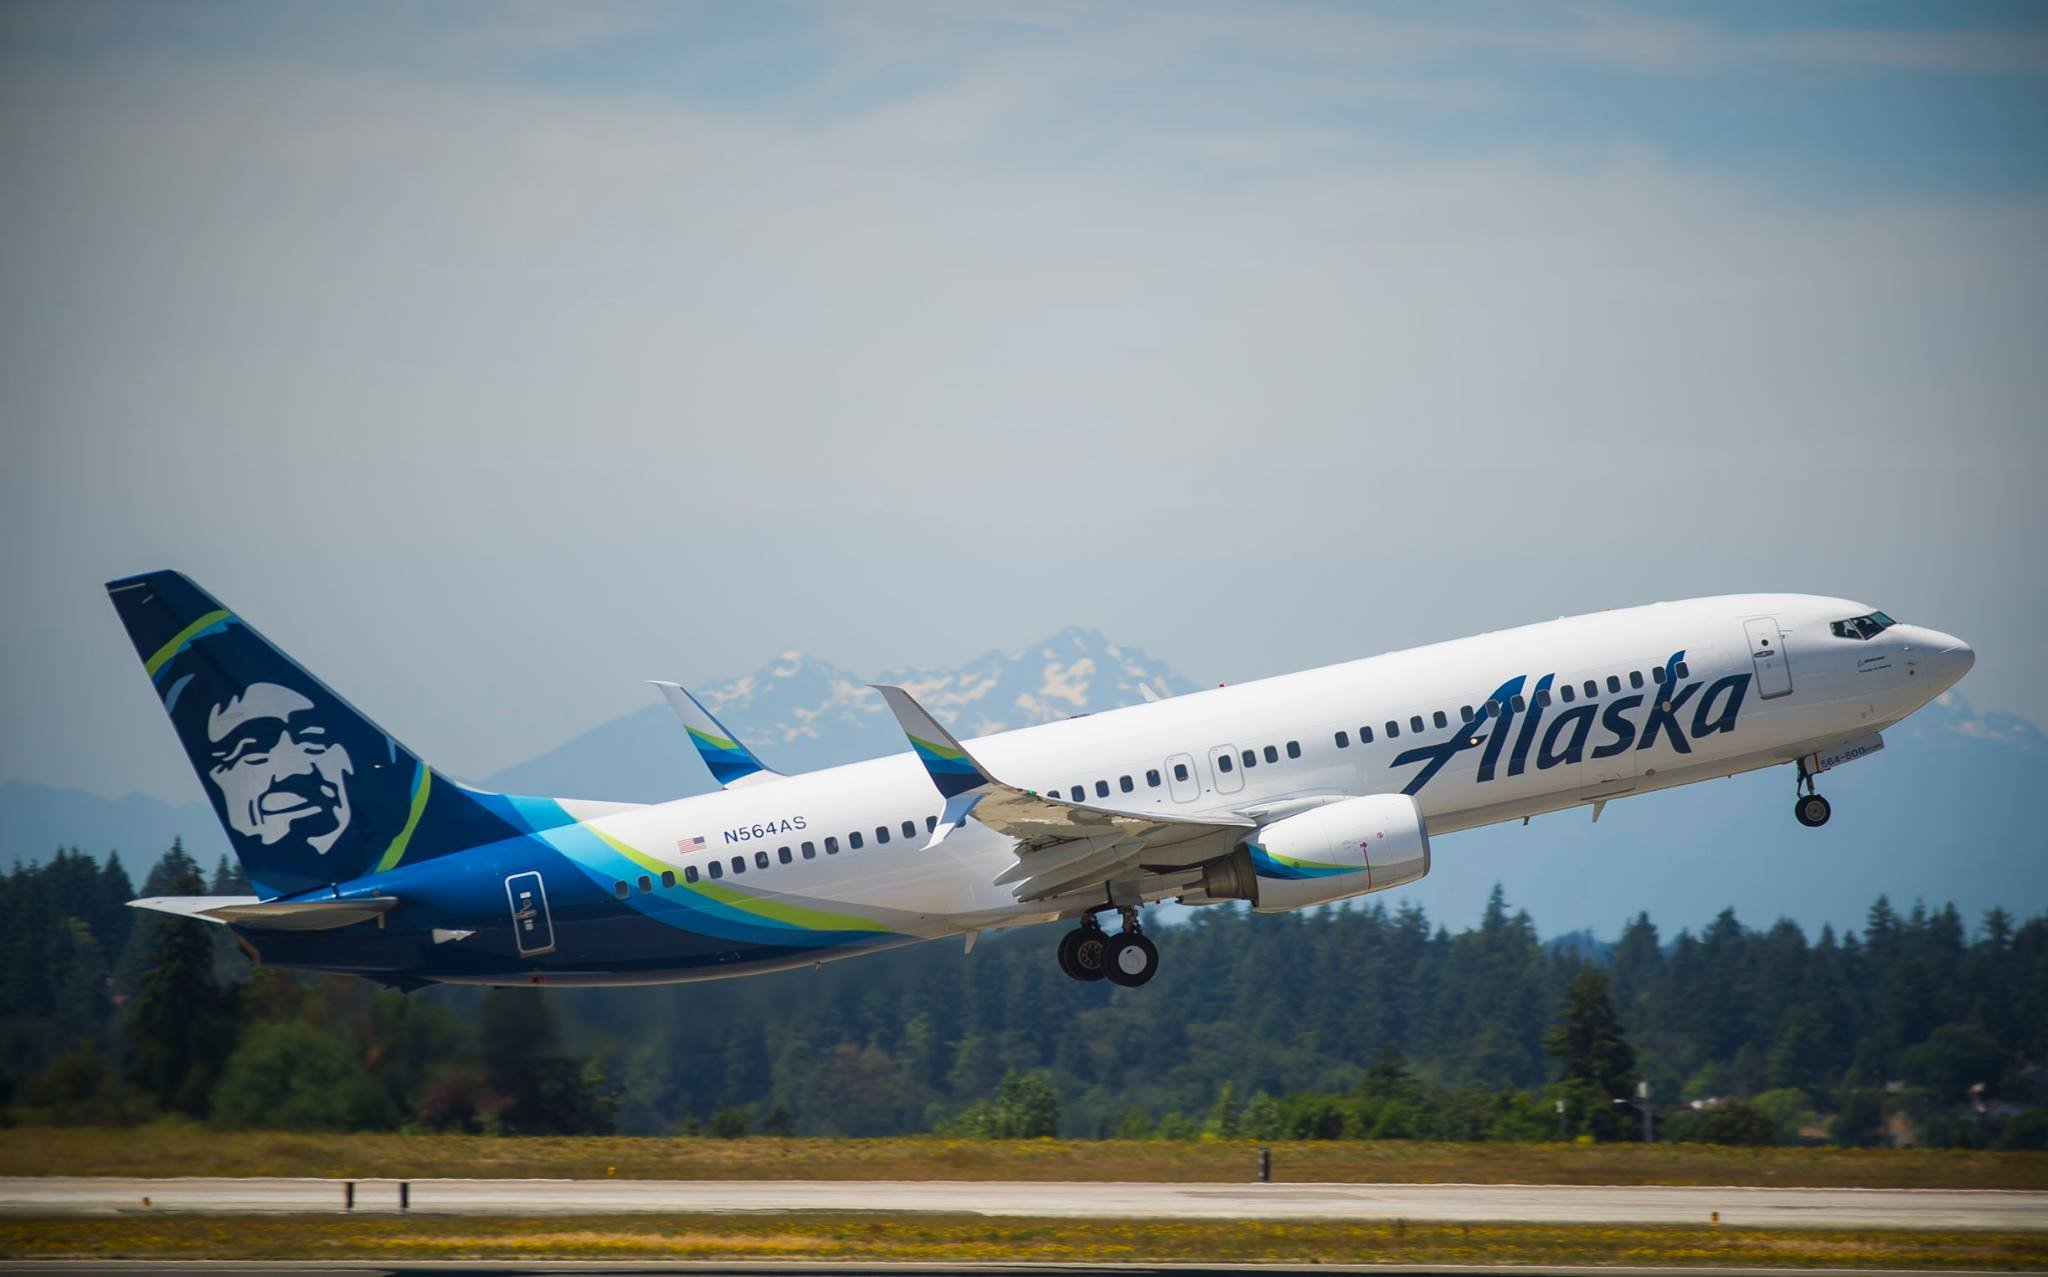 Photo Credit: Alaska Airlines Facebook Page